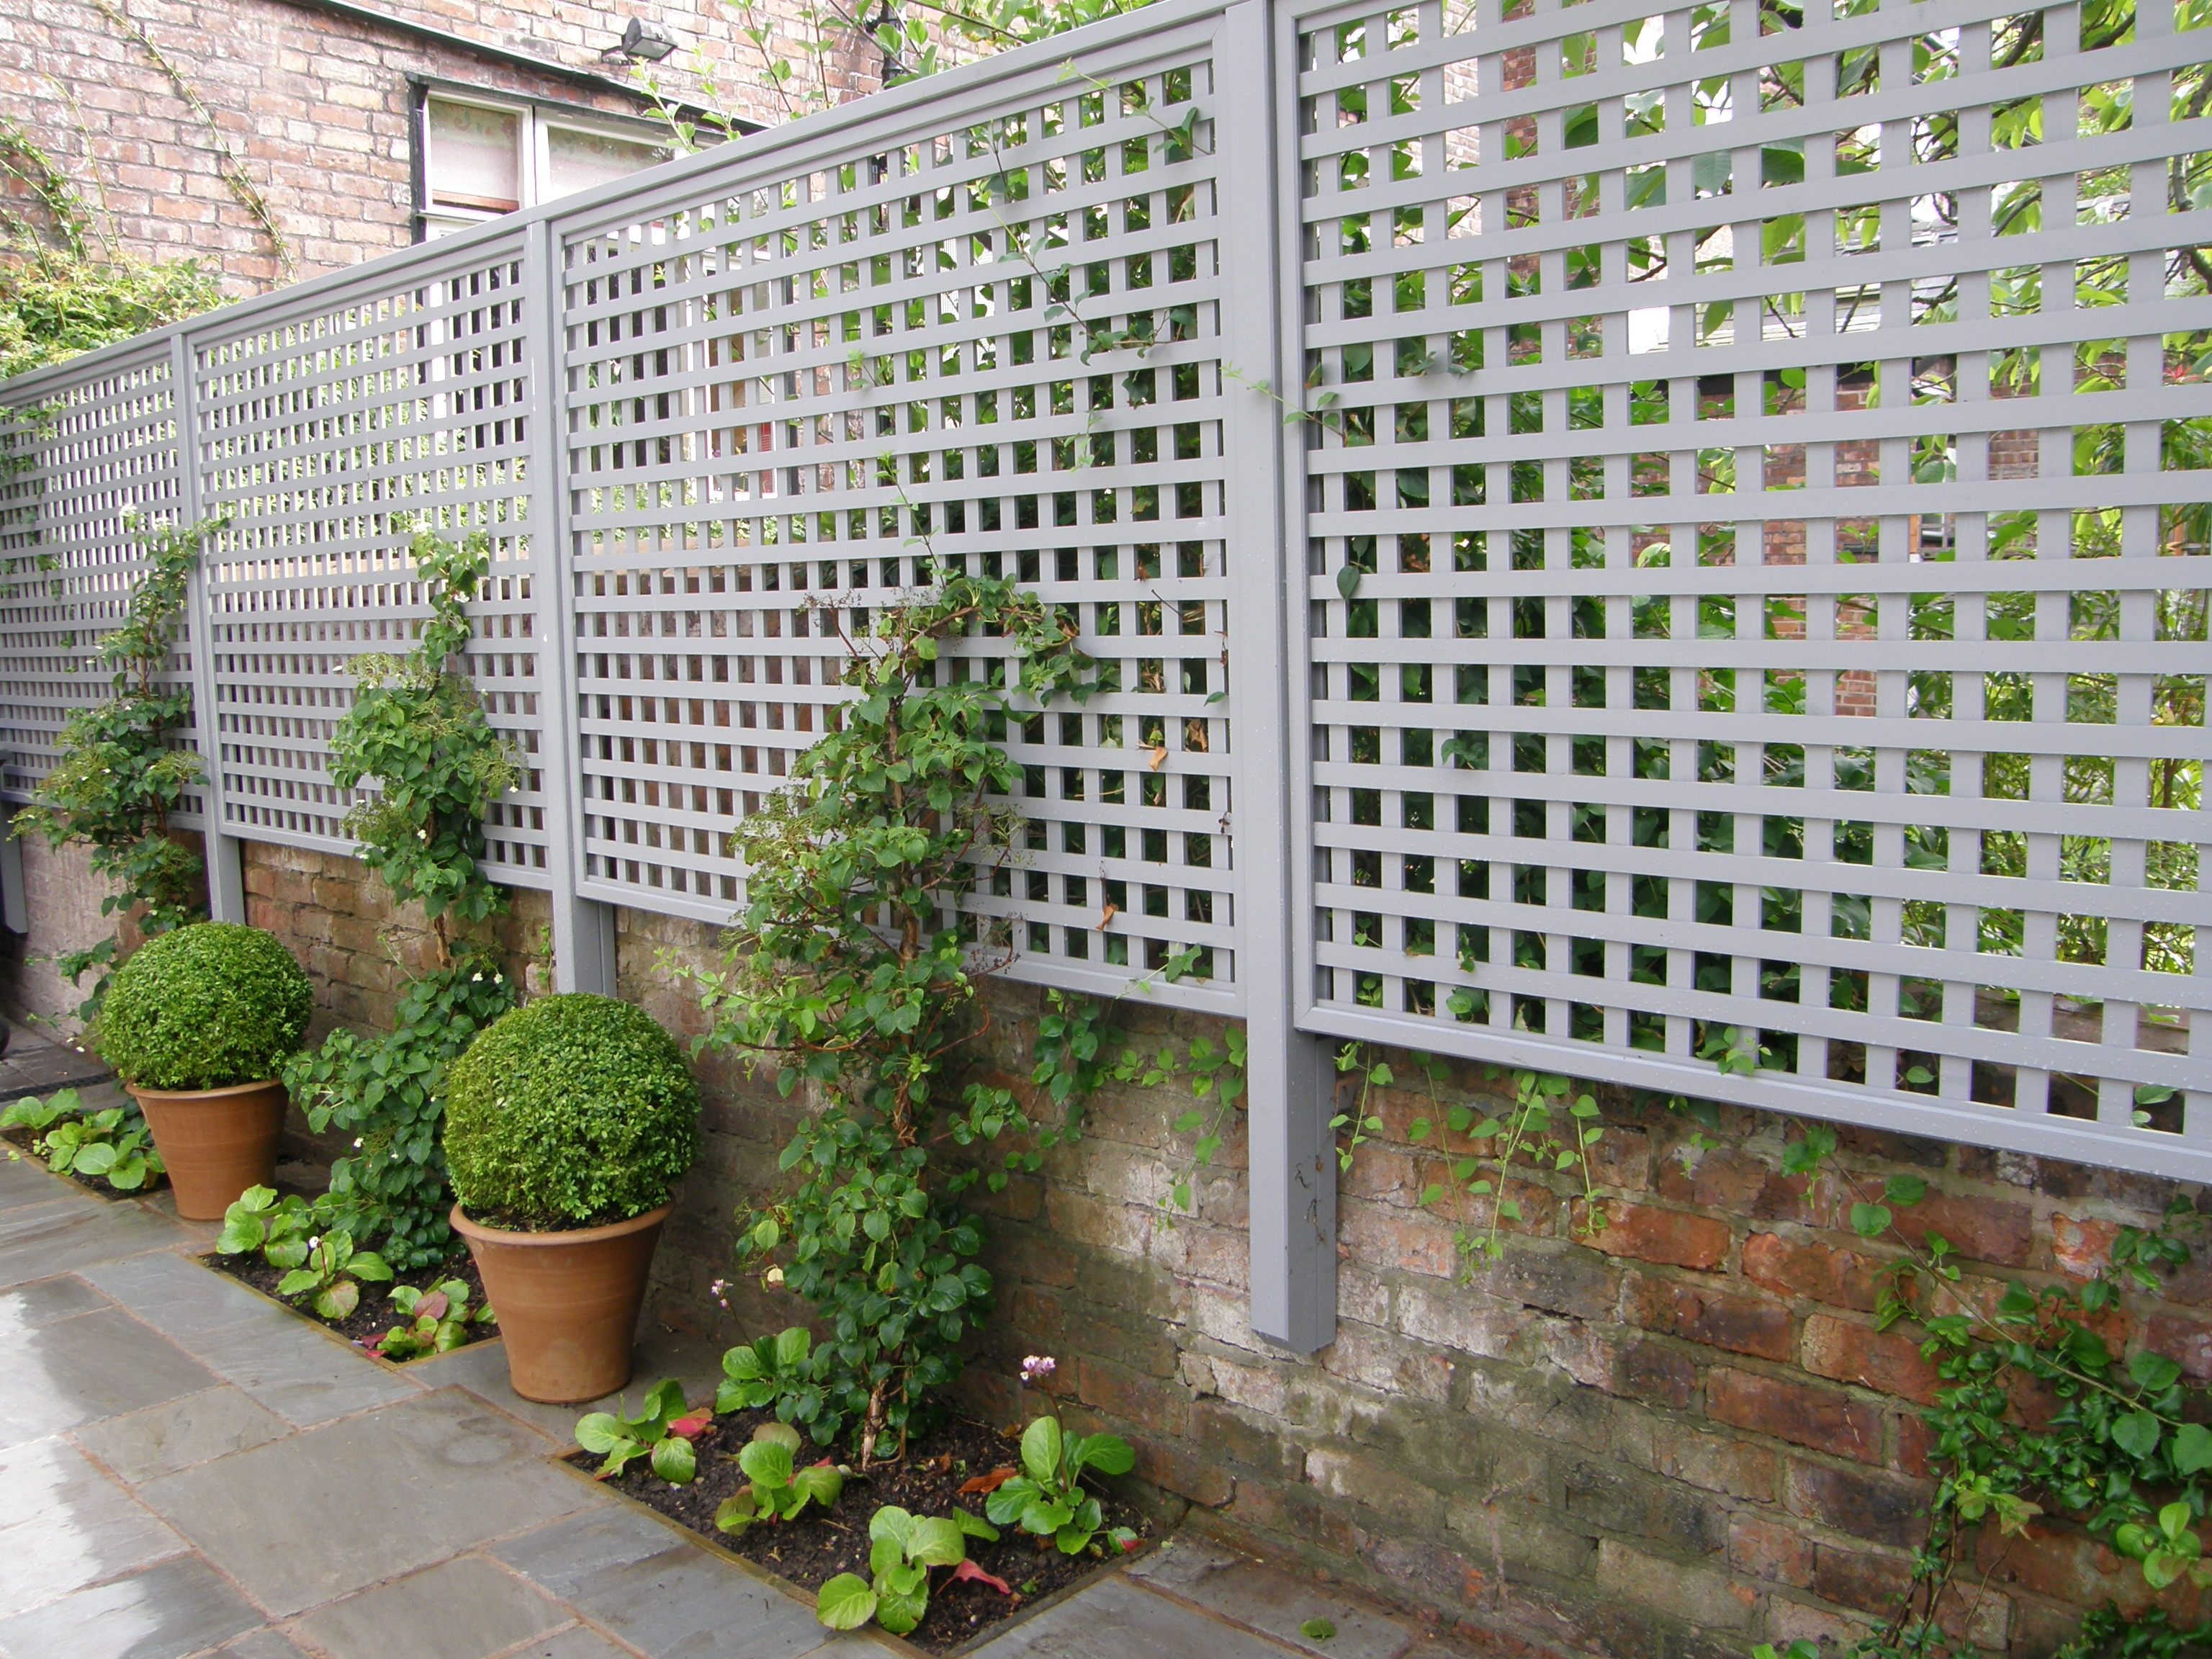 Wonderful Ideas For Trellis In Garden Part - 3: Garden Fencing